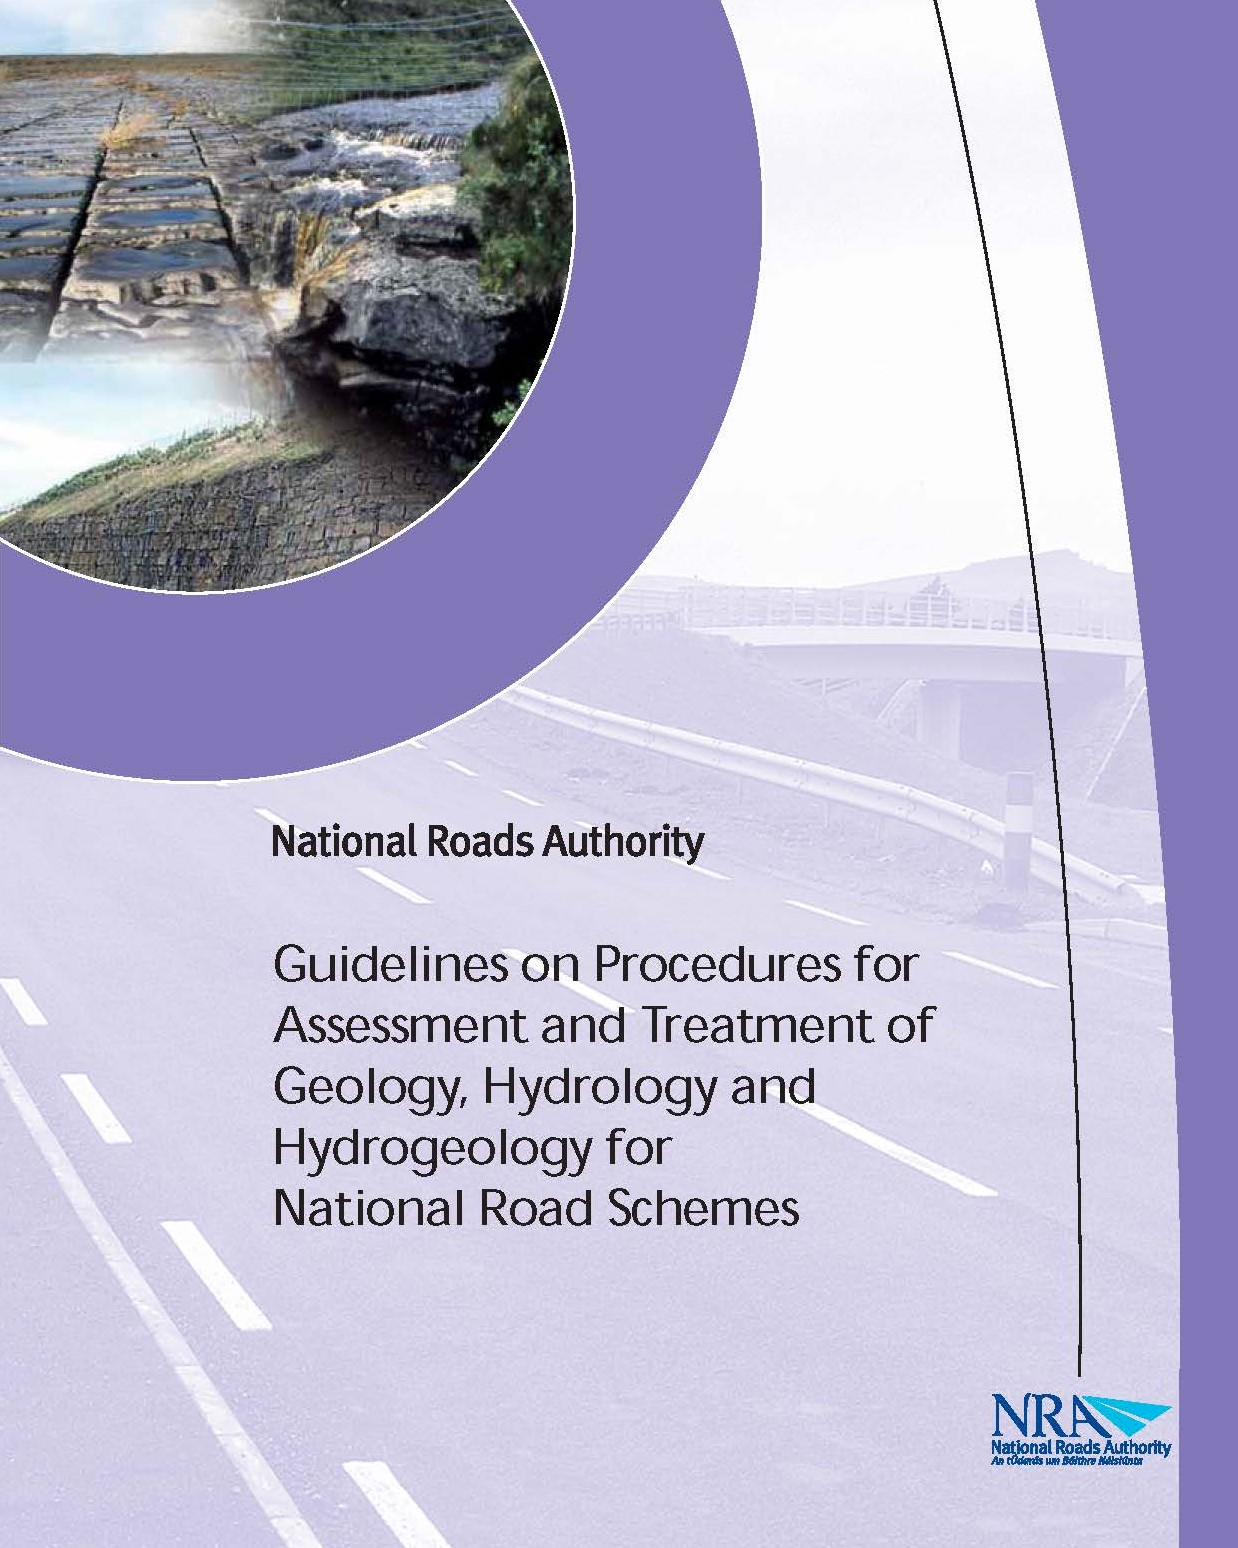 Guidelines on Procedures for Assessment and Treatment of Geology, Hydrology and Hydrogeology for National Road Schemes. National Roads Authority (NRA)